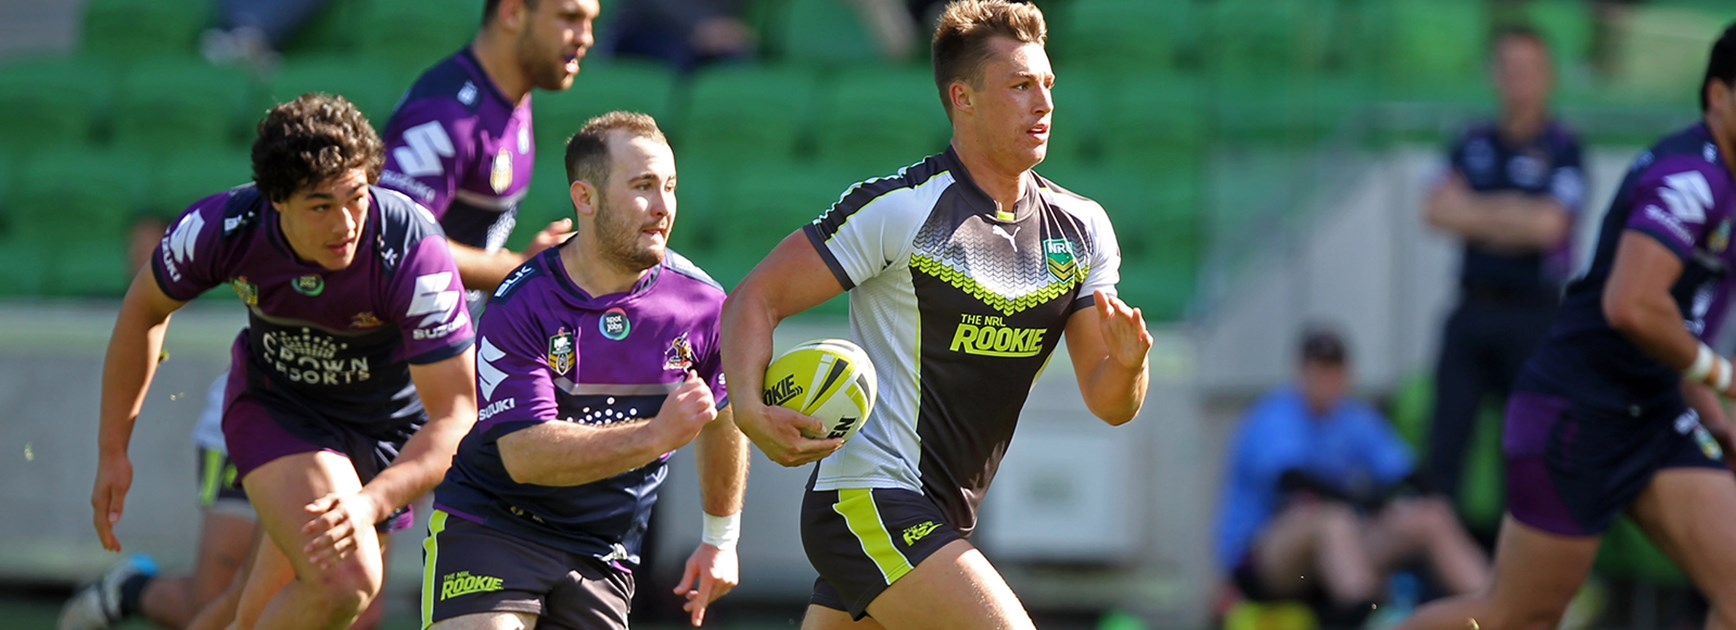 The NRL Rookies took on the Melbourne Storm National Youth Cup team at AAMI Park in Episode 4.